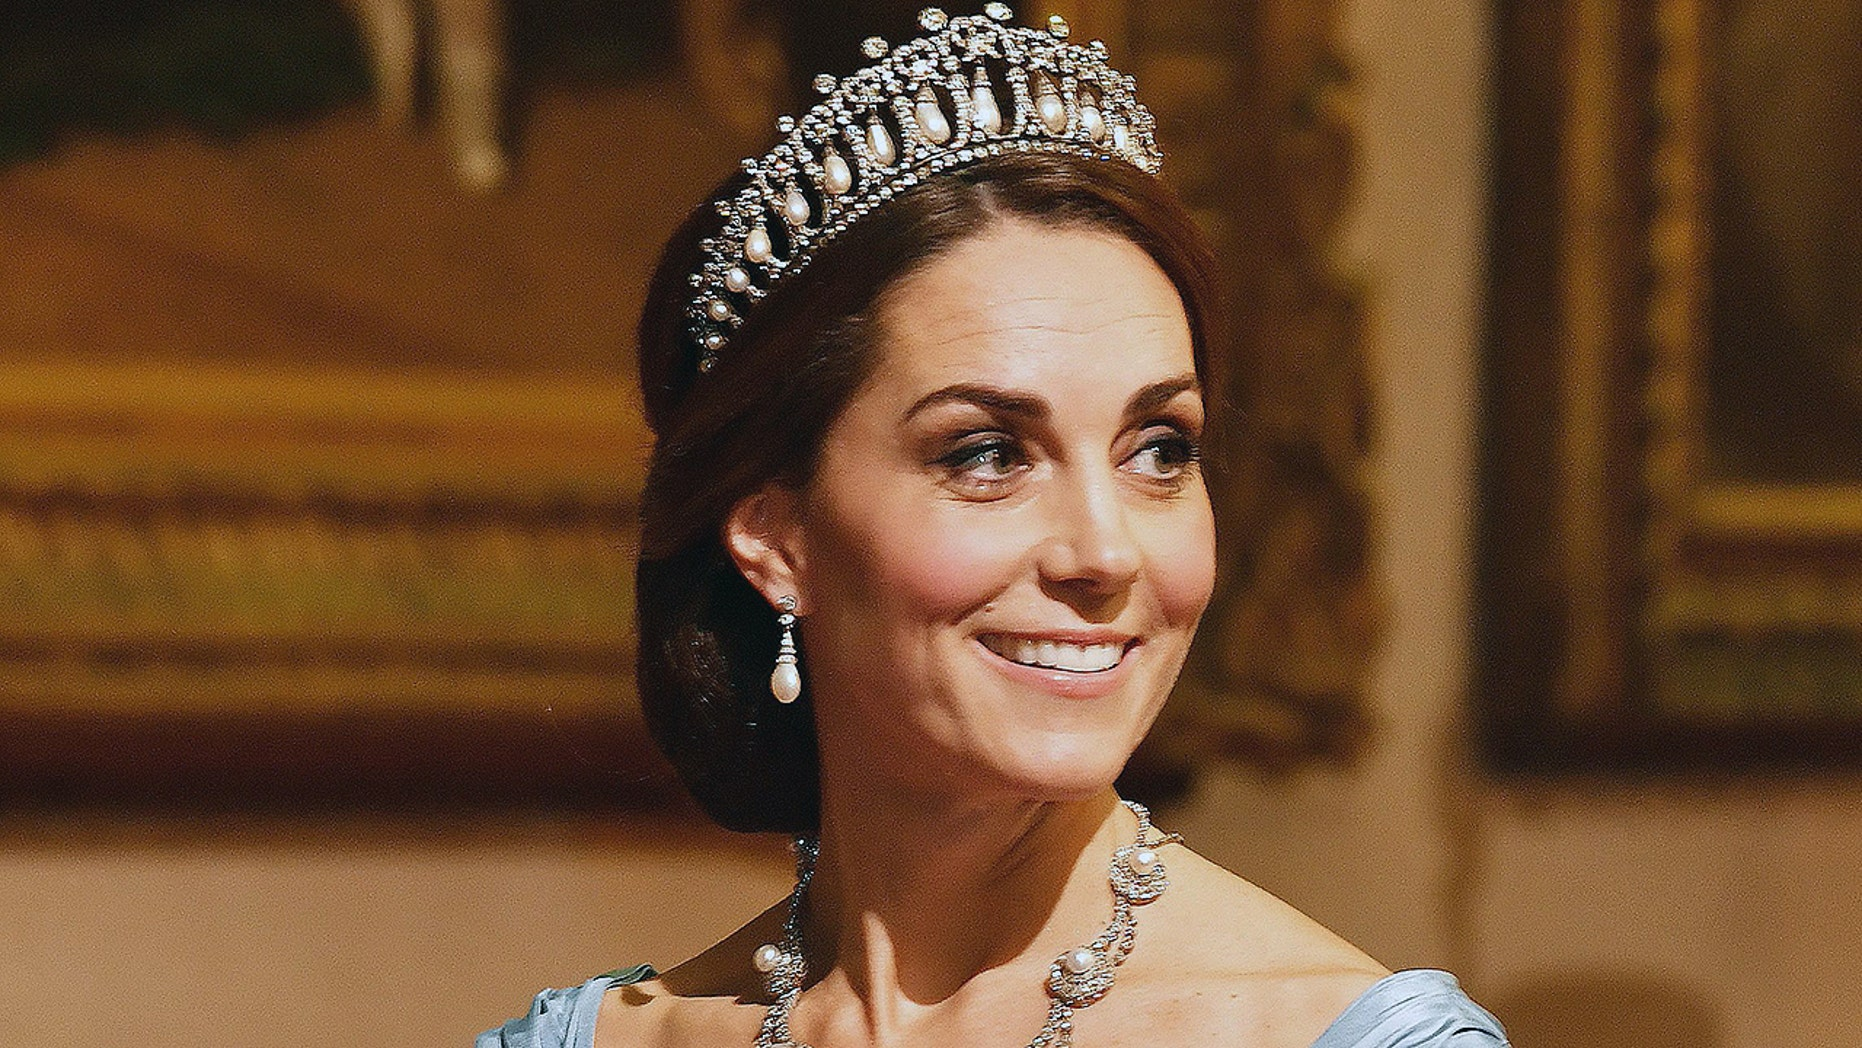 Is this the crown Kate Middleton will wear when she becomes Queen?